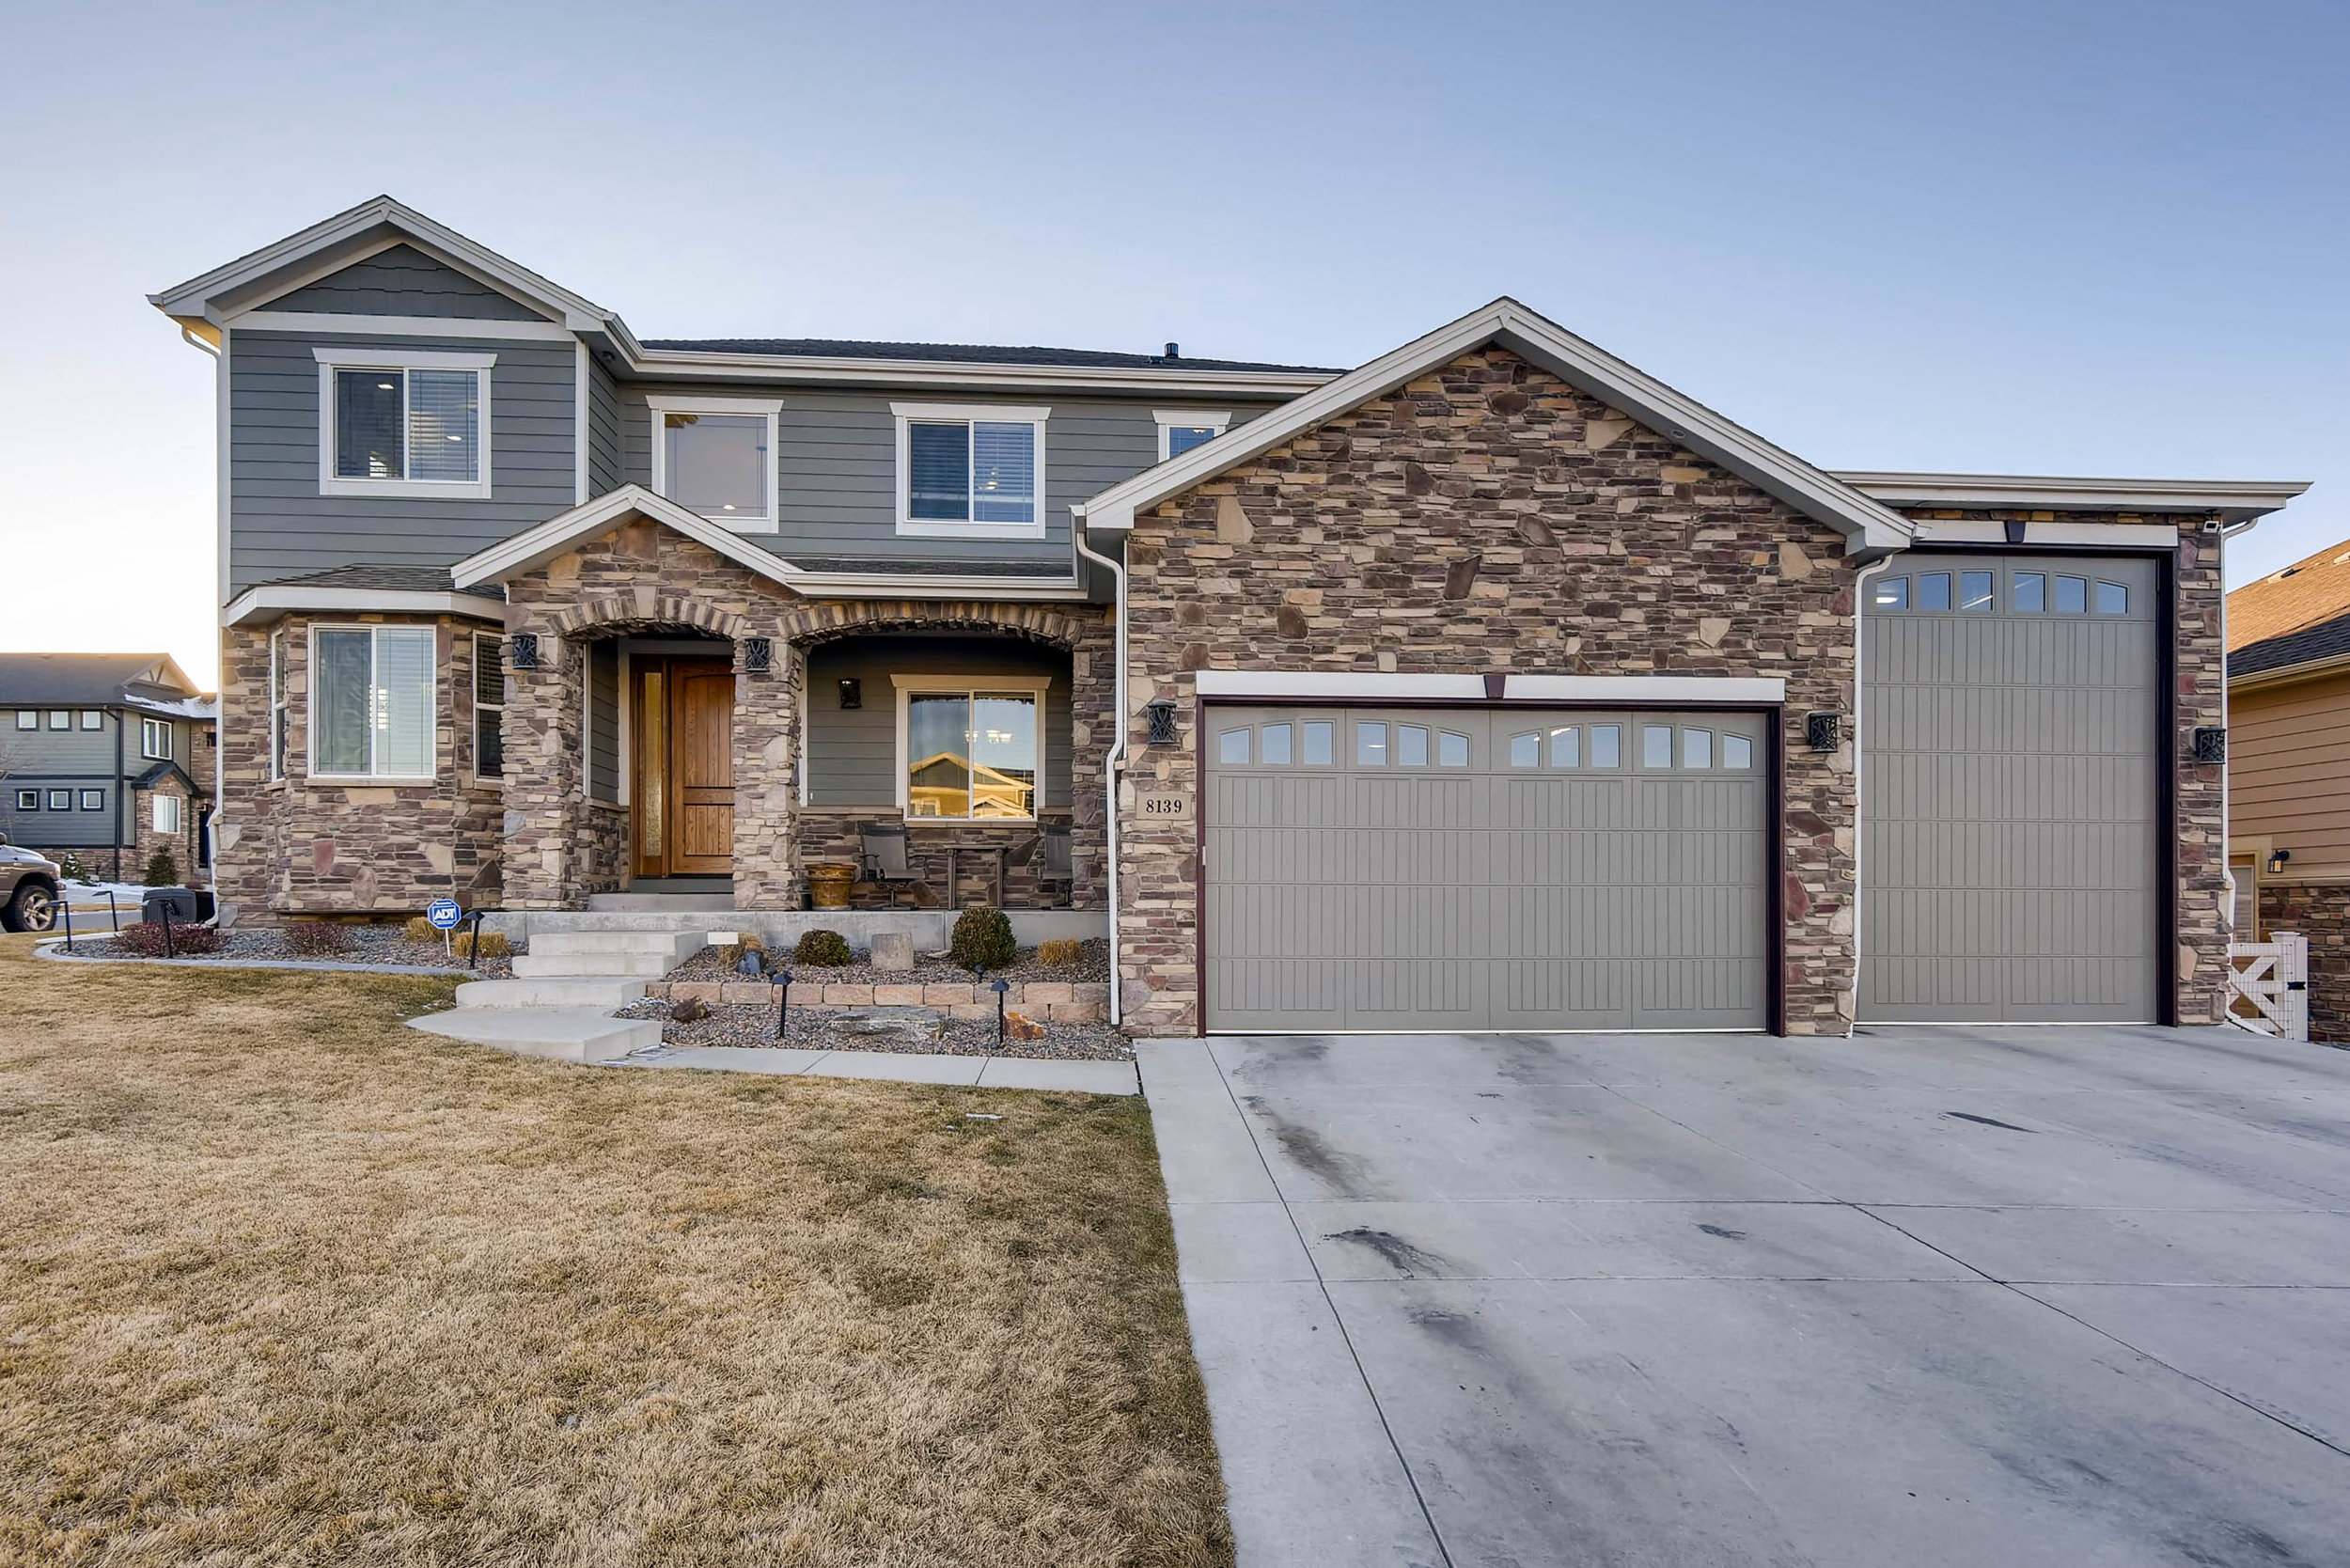 An extraordinary home sitting on a corner lot and backing to beautiful open space. Walking in the front door you will feel the comfort of the layout and the quality of the finishes. Kitchen overlooks into the living room with high detailed ceilings. Office has built in cabinets with granite tops. Doing laundry will no longer be a chore with location on the second floor. Basement features a well thought out design with wet bar, surround sound, and media wiring. There is an additional bedroom, bathroom, and game/workout room. Backyard patio overlooks natural gas fire pit and basketball court. Oversized heated garage with room for your new RV. This home has it all! WON'T LAST LONG!